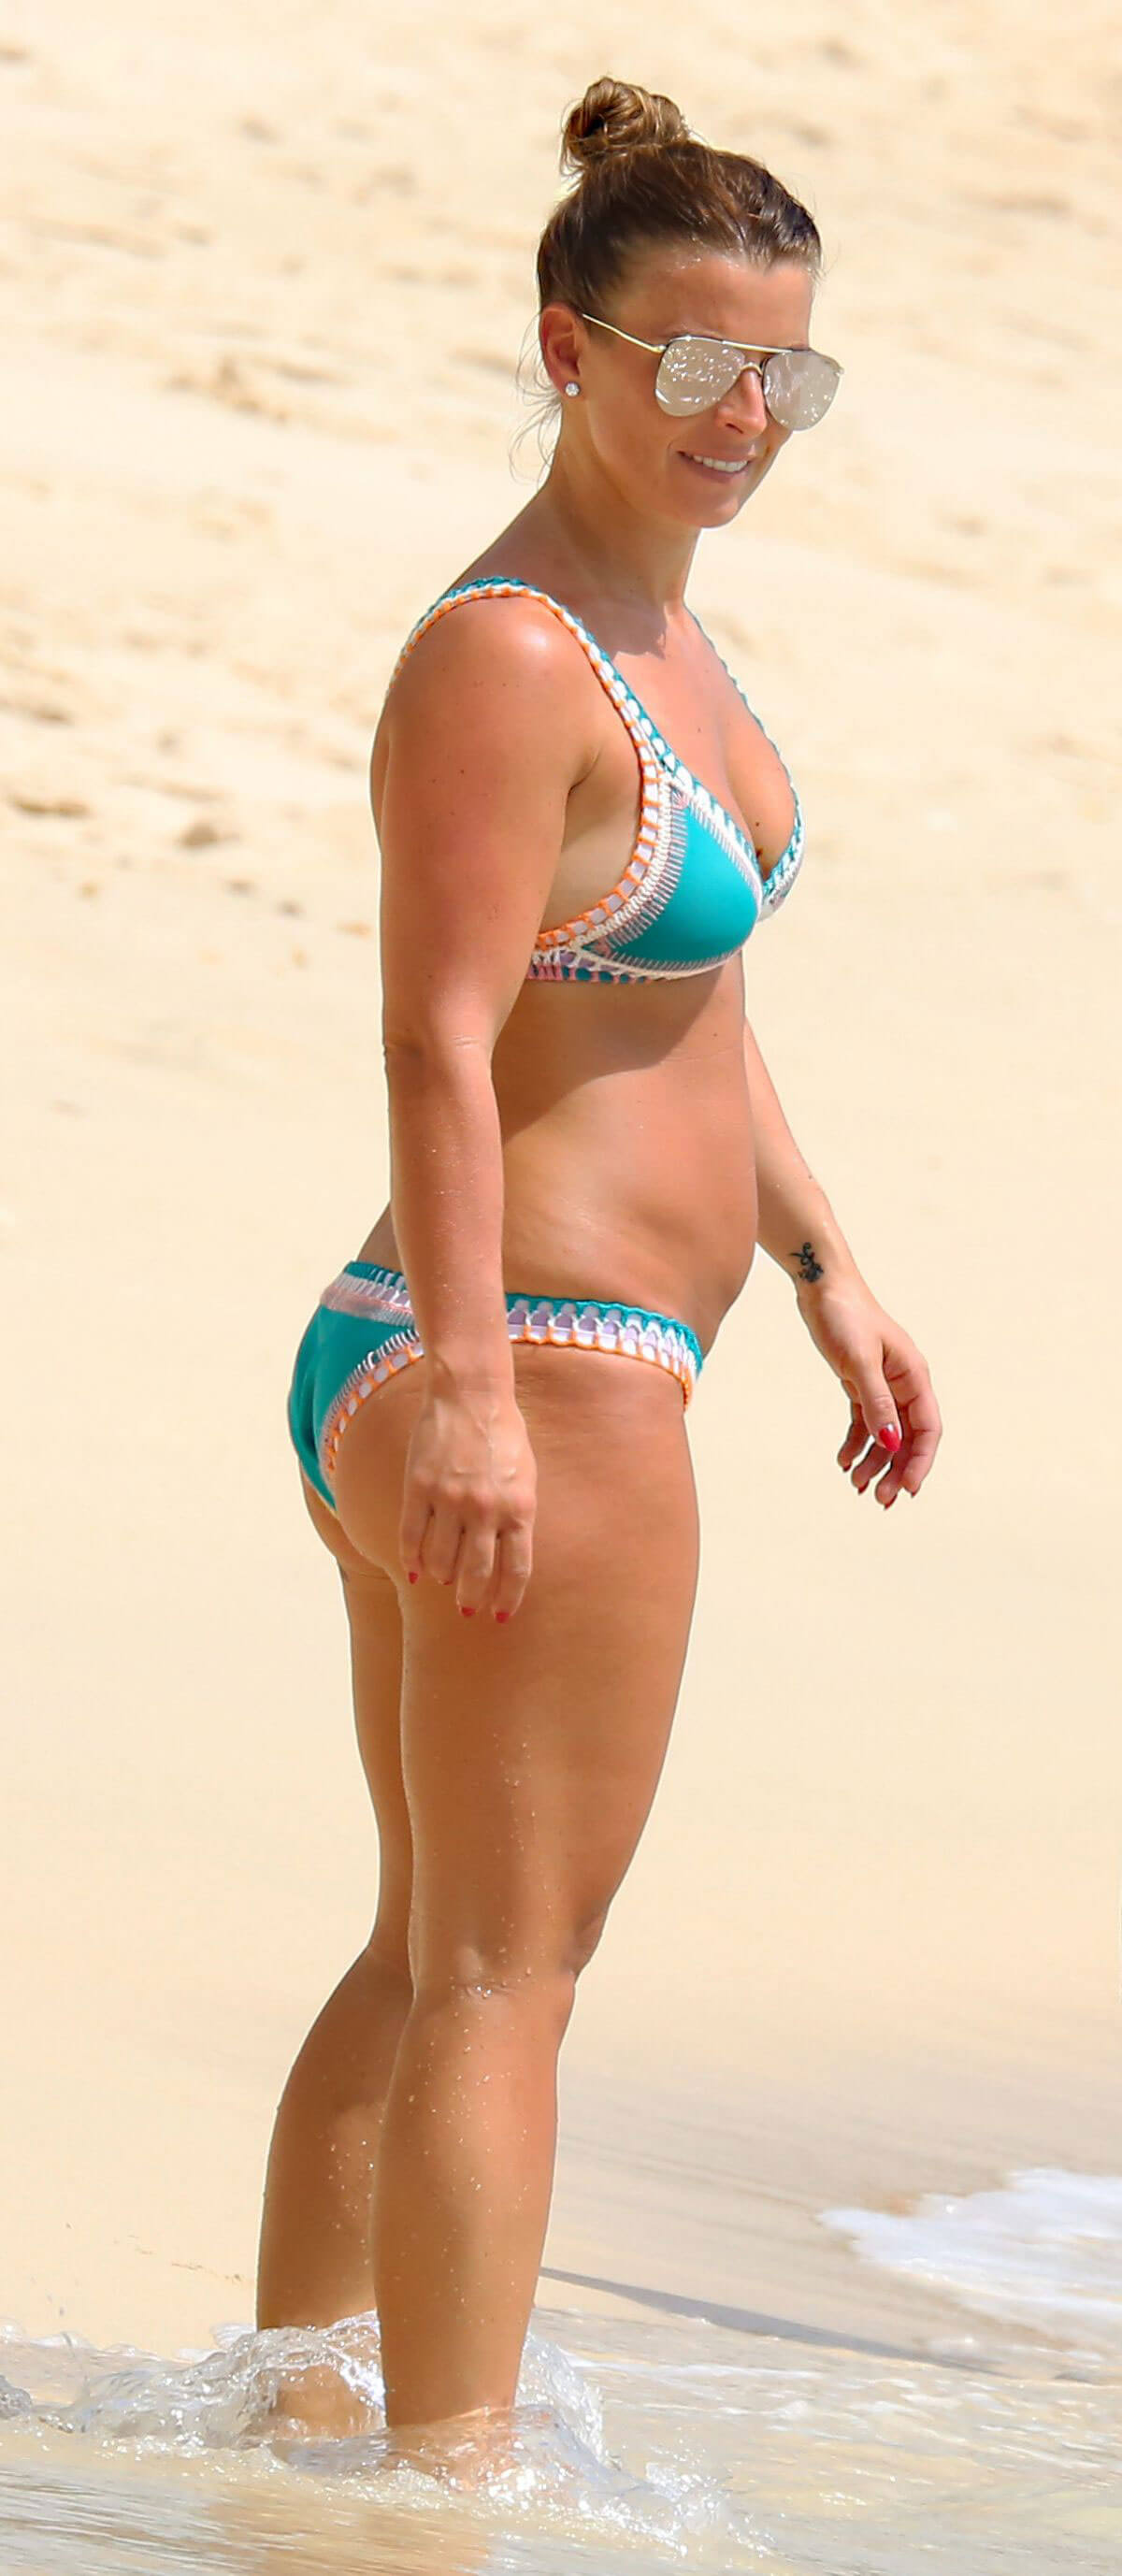 Cleavage Coleen Rooney nude (74 foto and video), Sexy, Bikini, Feet, swimsuit 2020